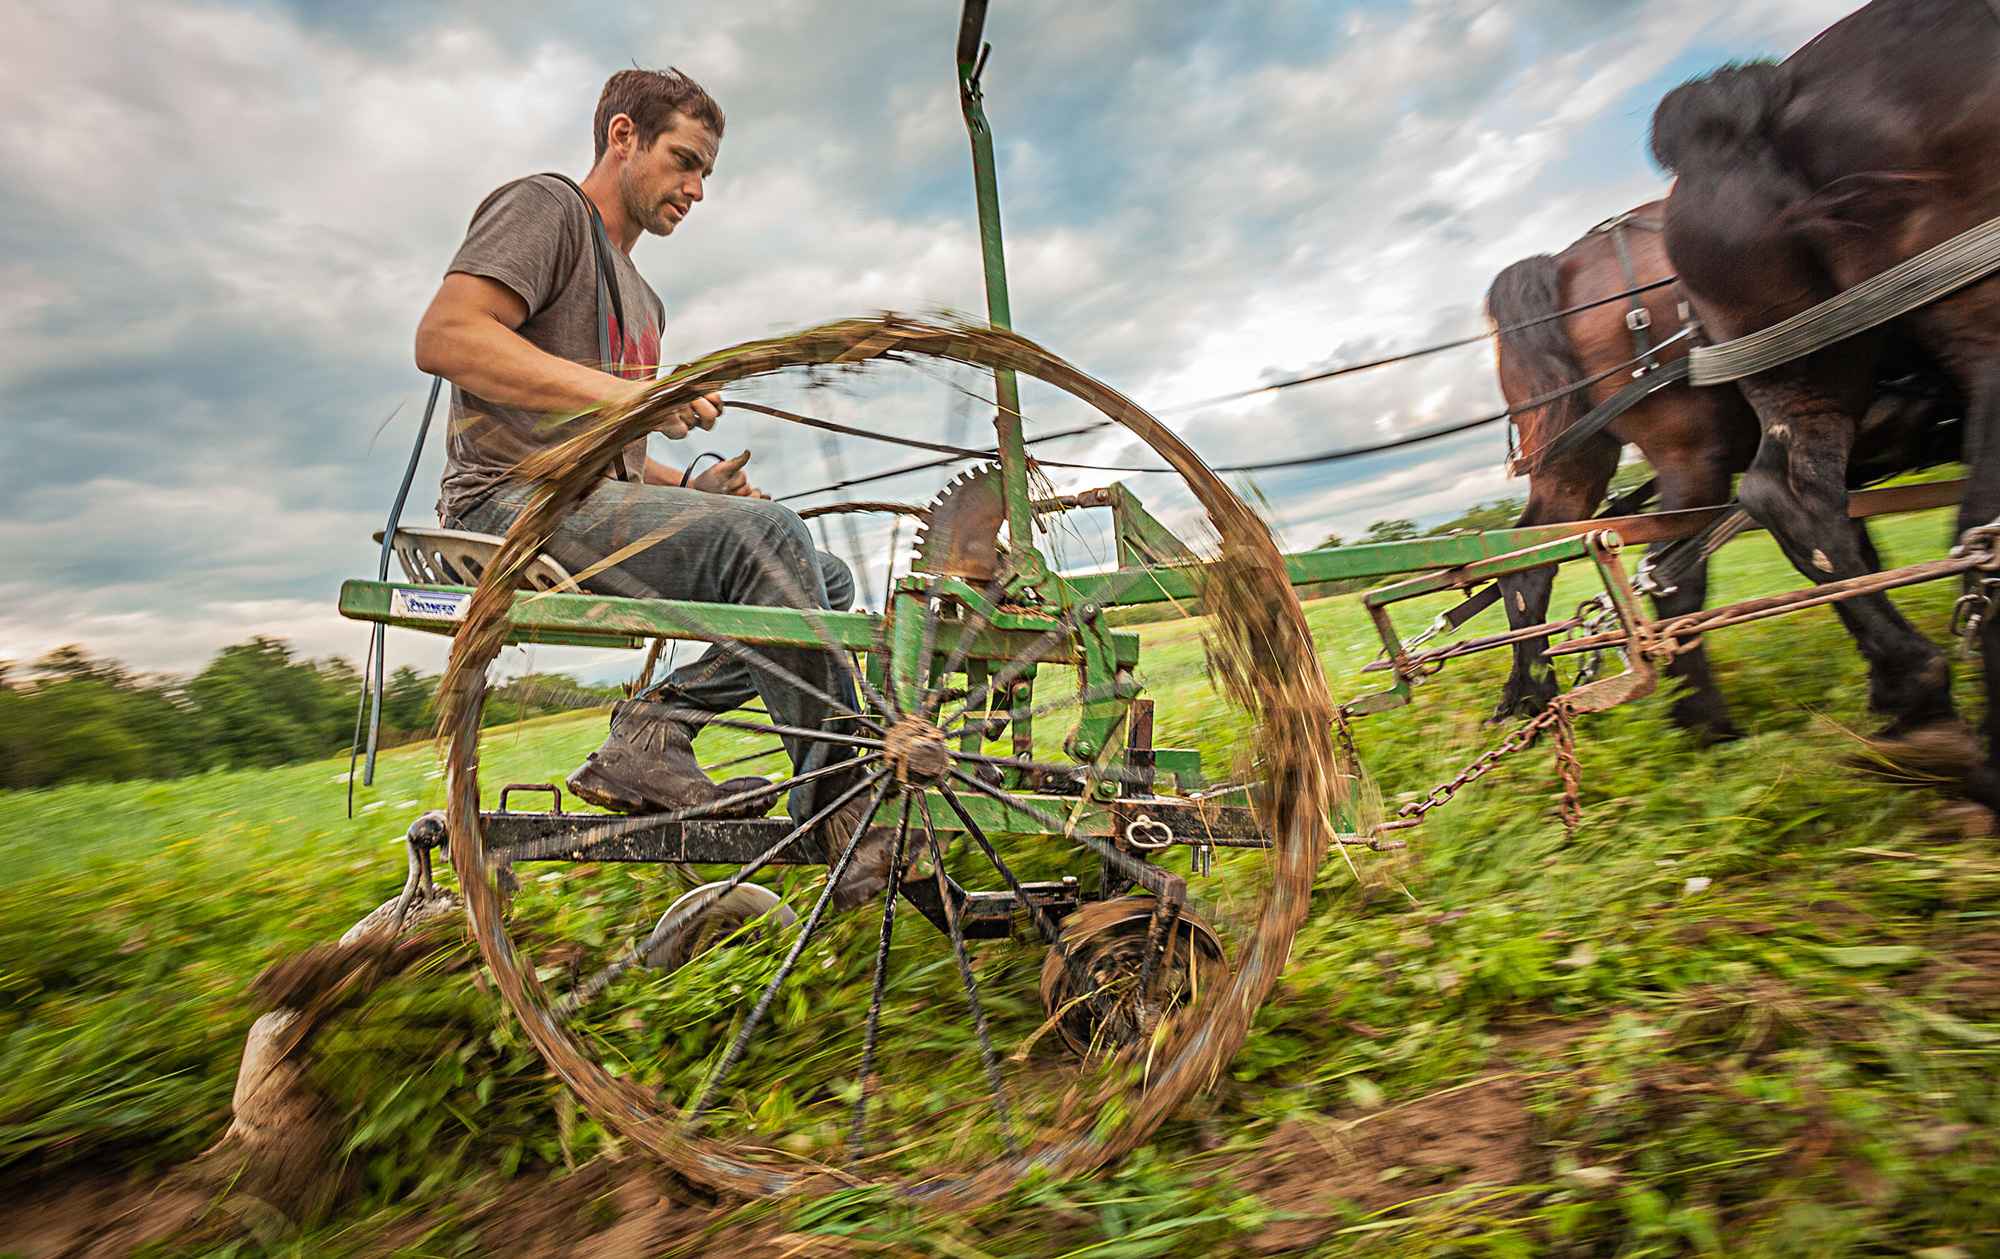 Mark Trapp uses no gas-powered equipment